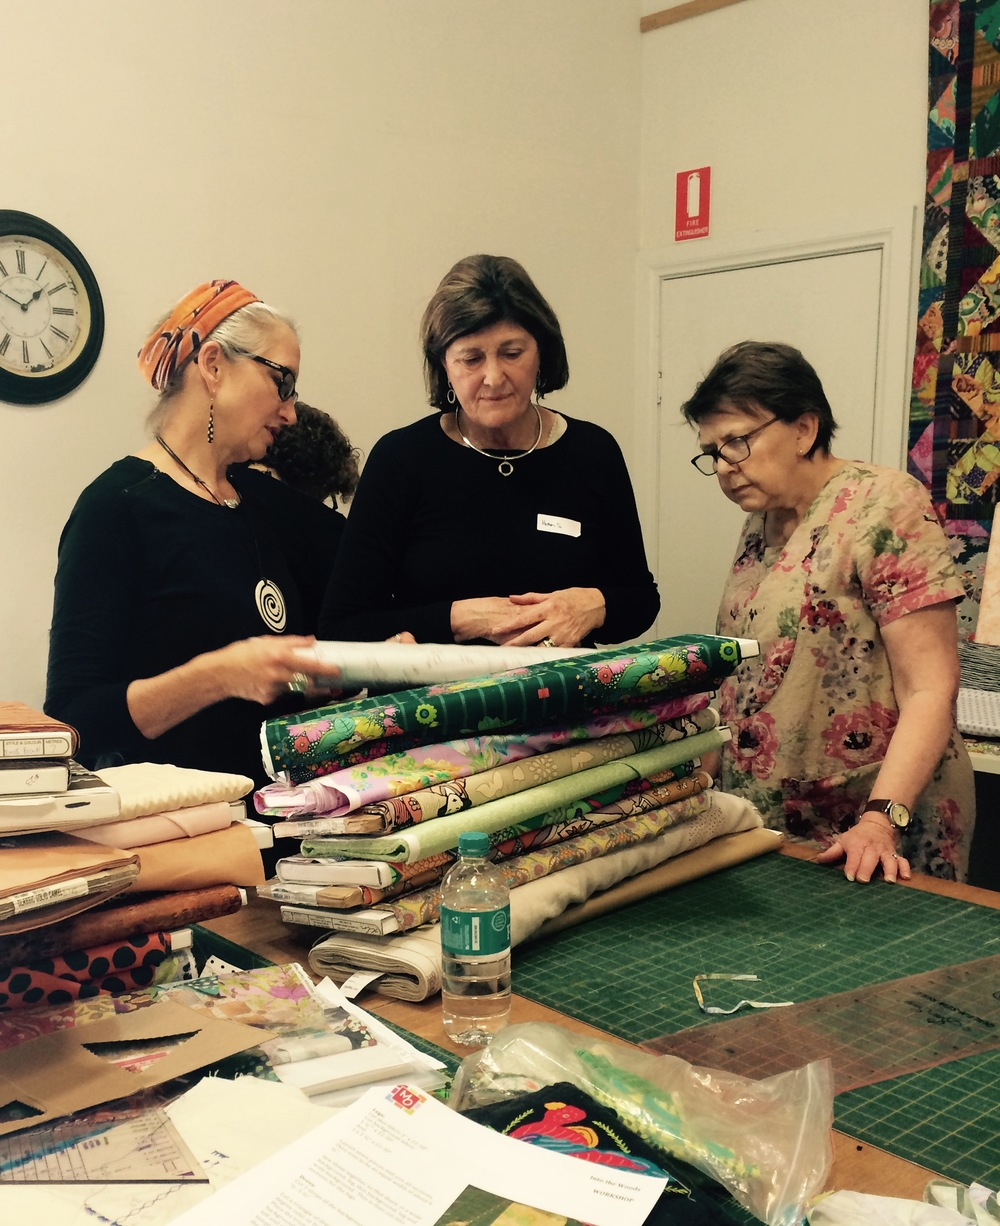 Kathy, Helen, & Lorraine making very considered decisions.